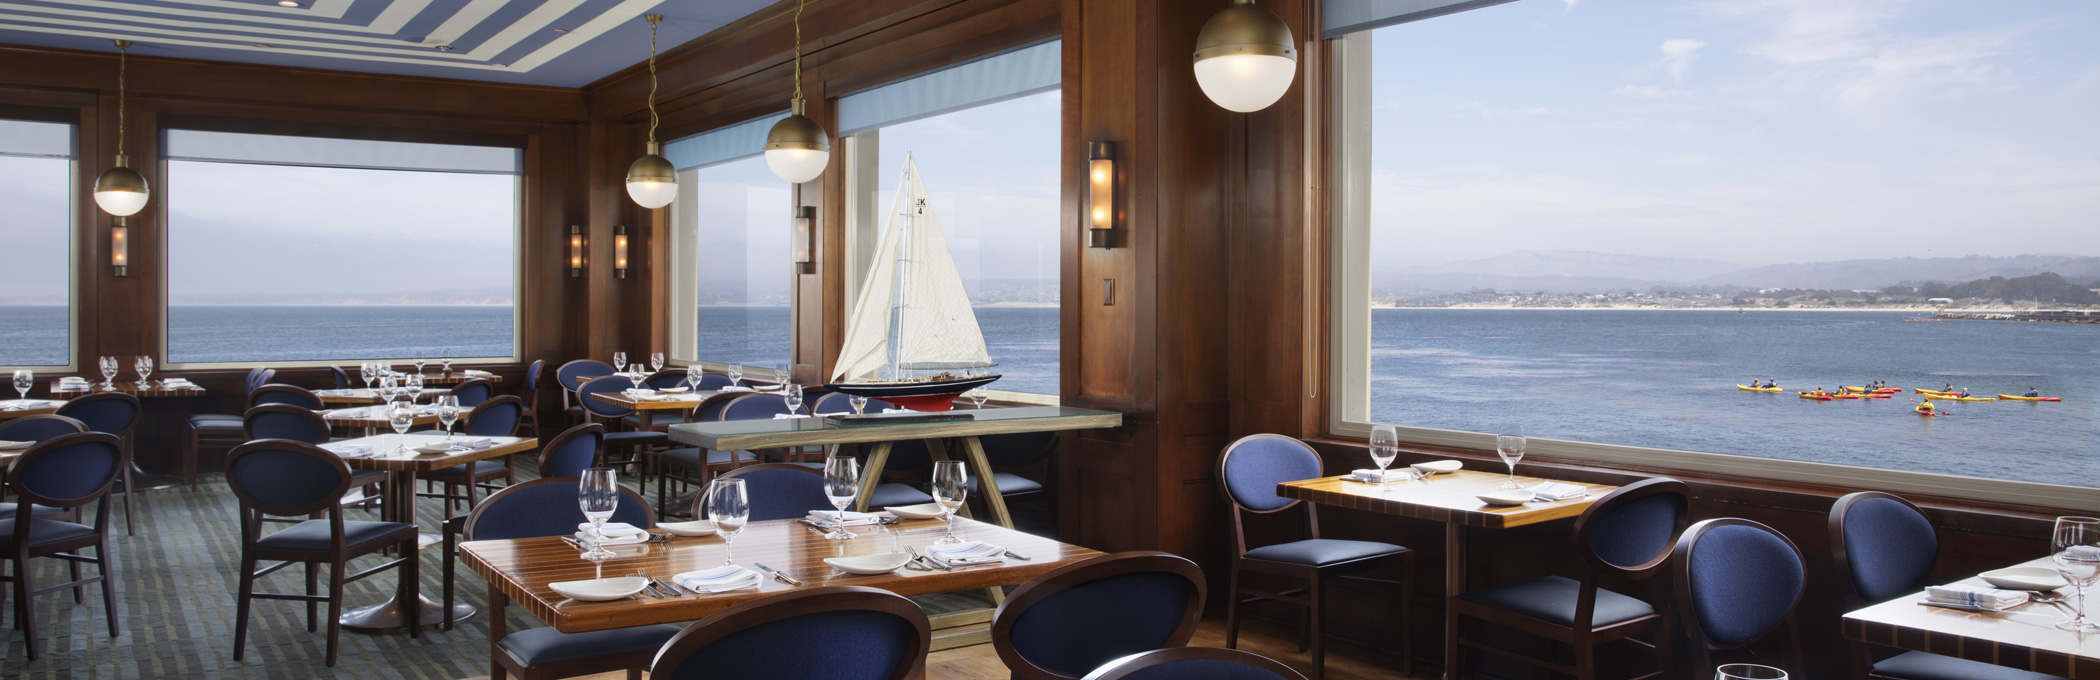 schooners dining room overlooking ocean header